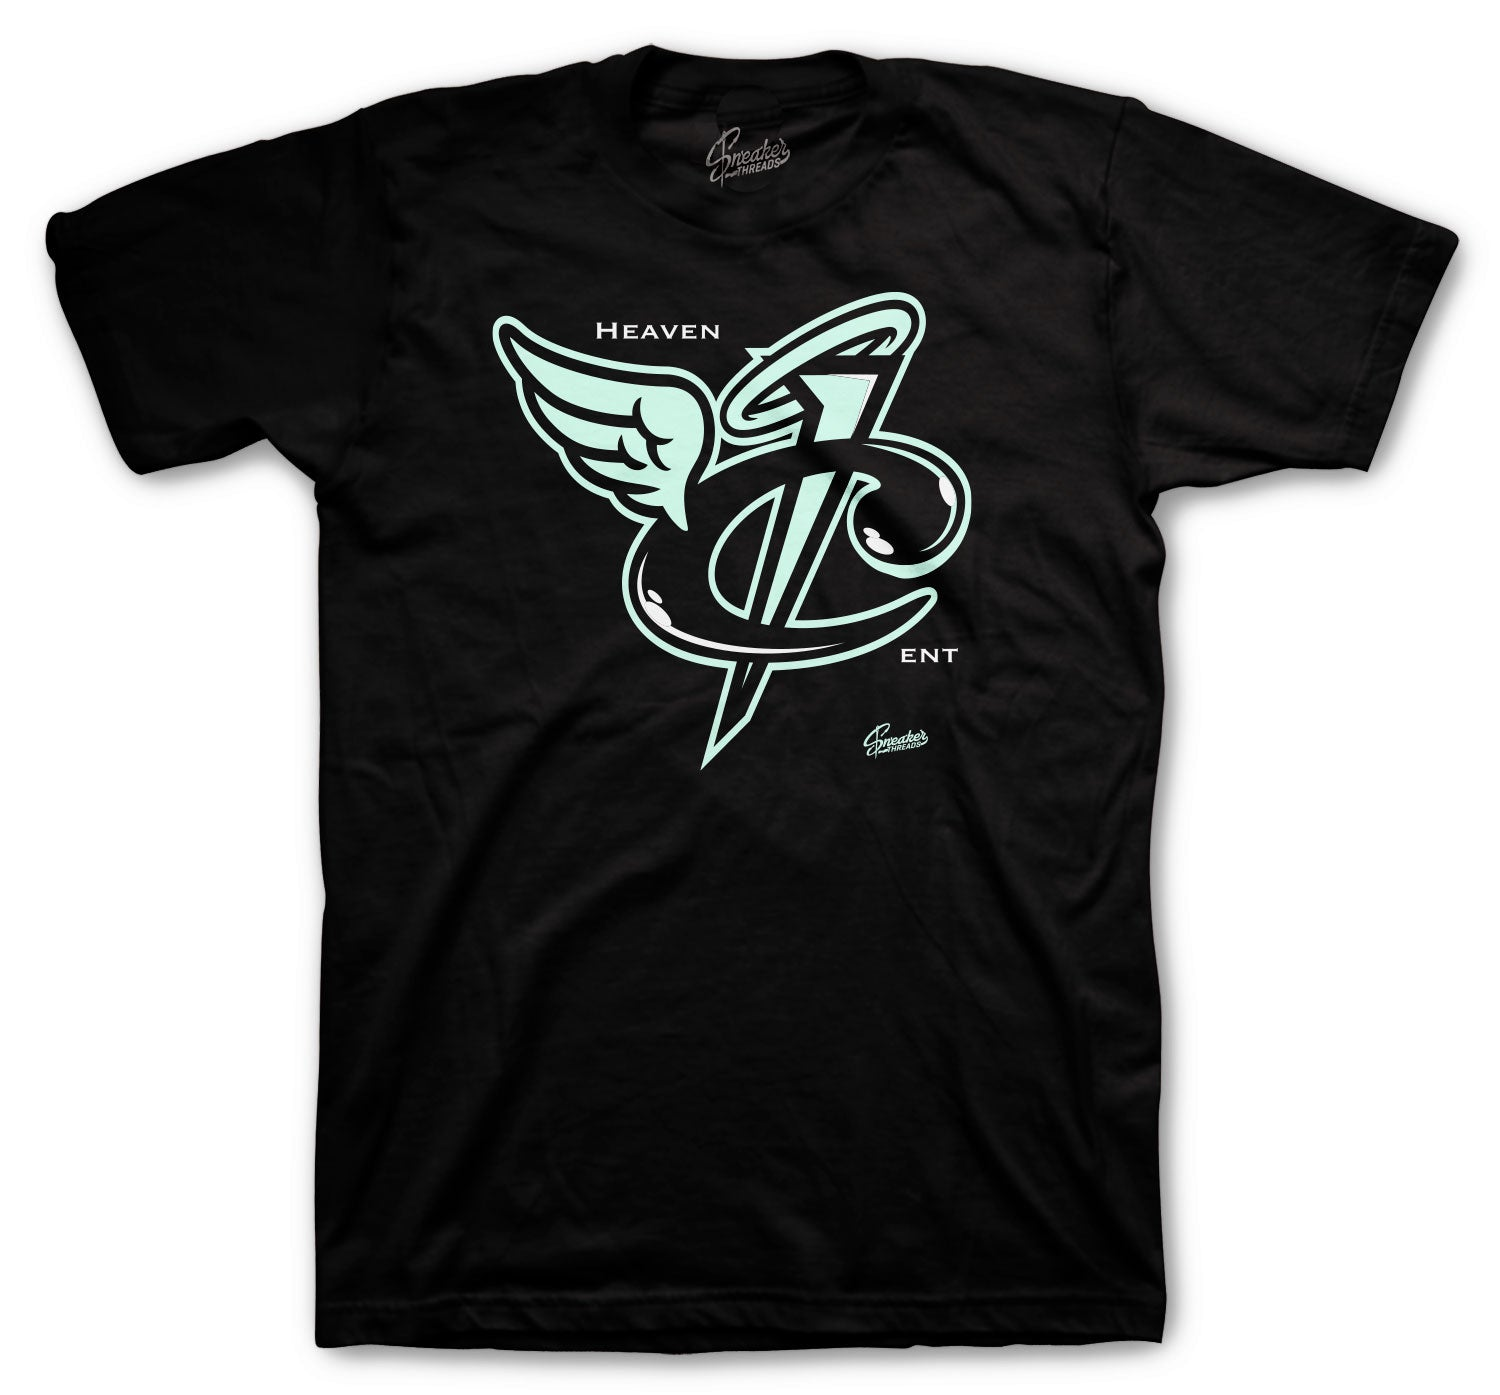 Barely Green All Star Shirt - Heaven Cent - Black